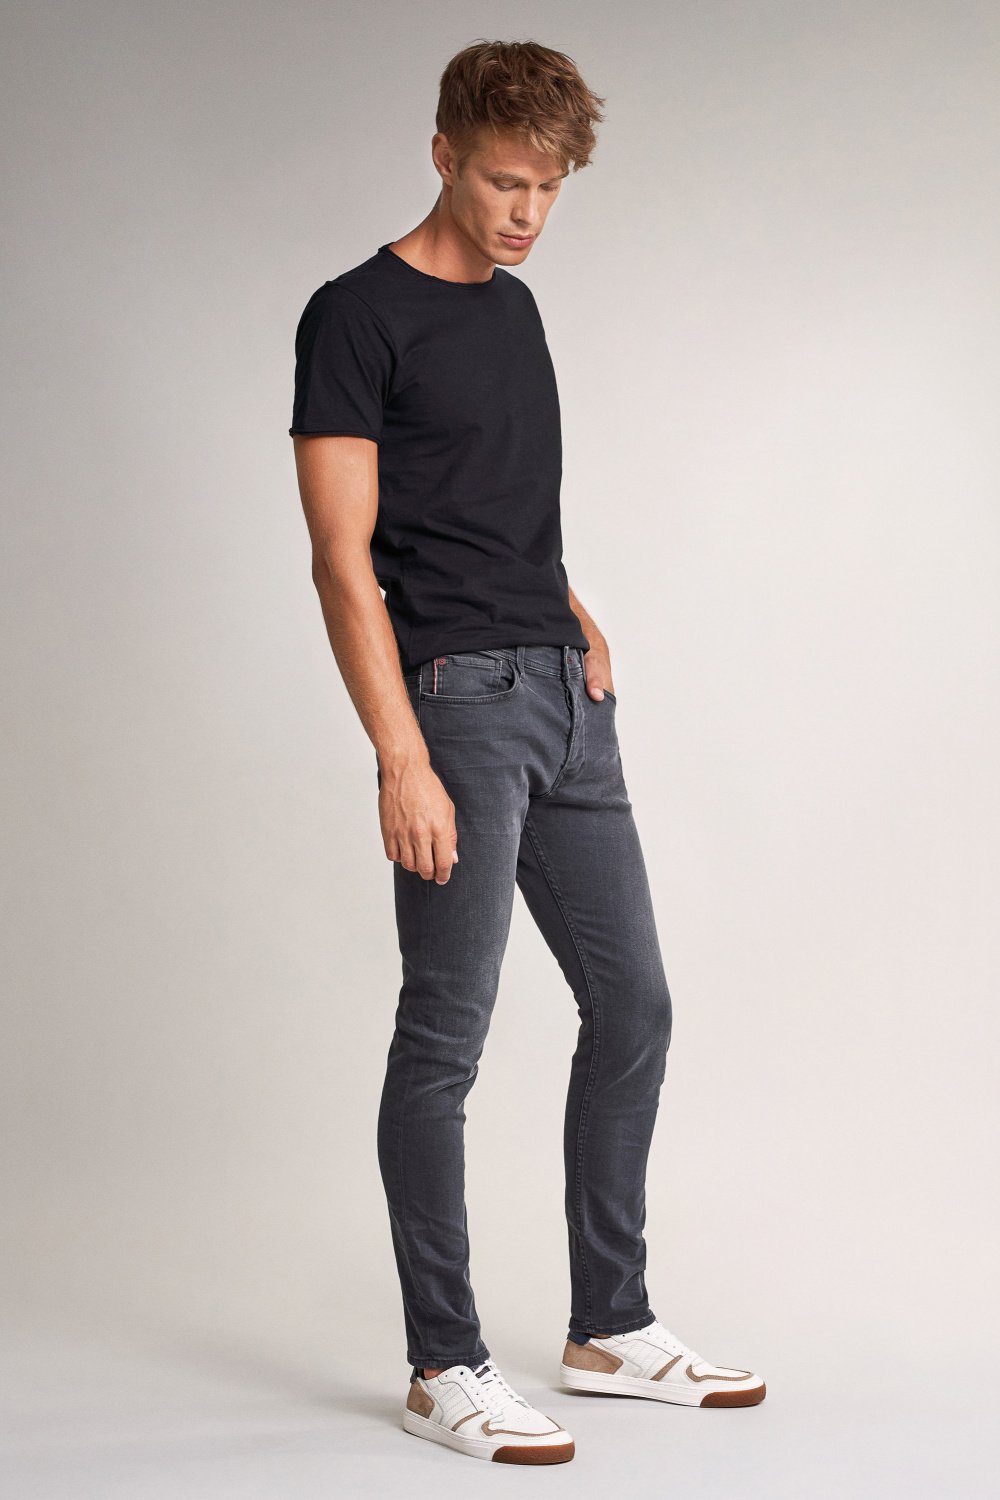 Jeans Slender, Slim Fit Carrot - Salsa